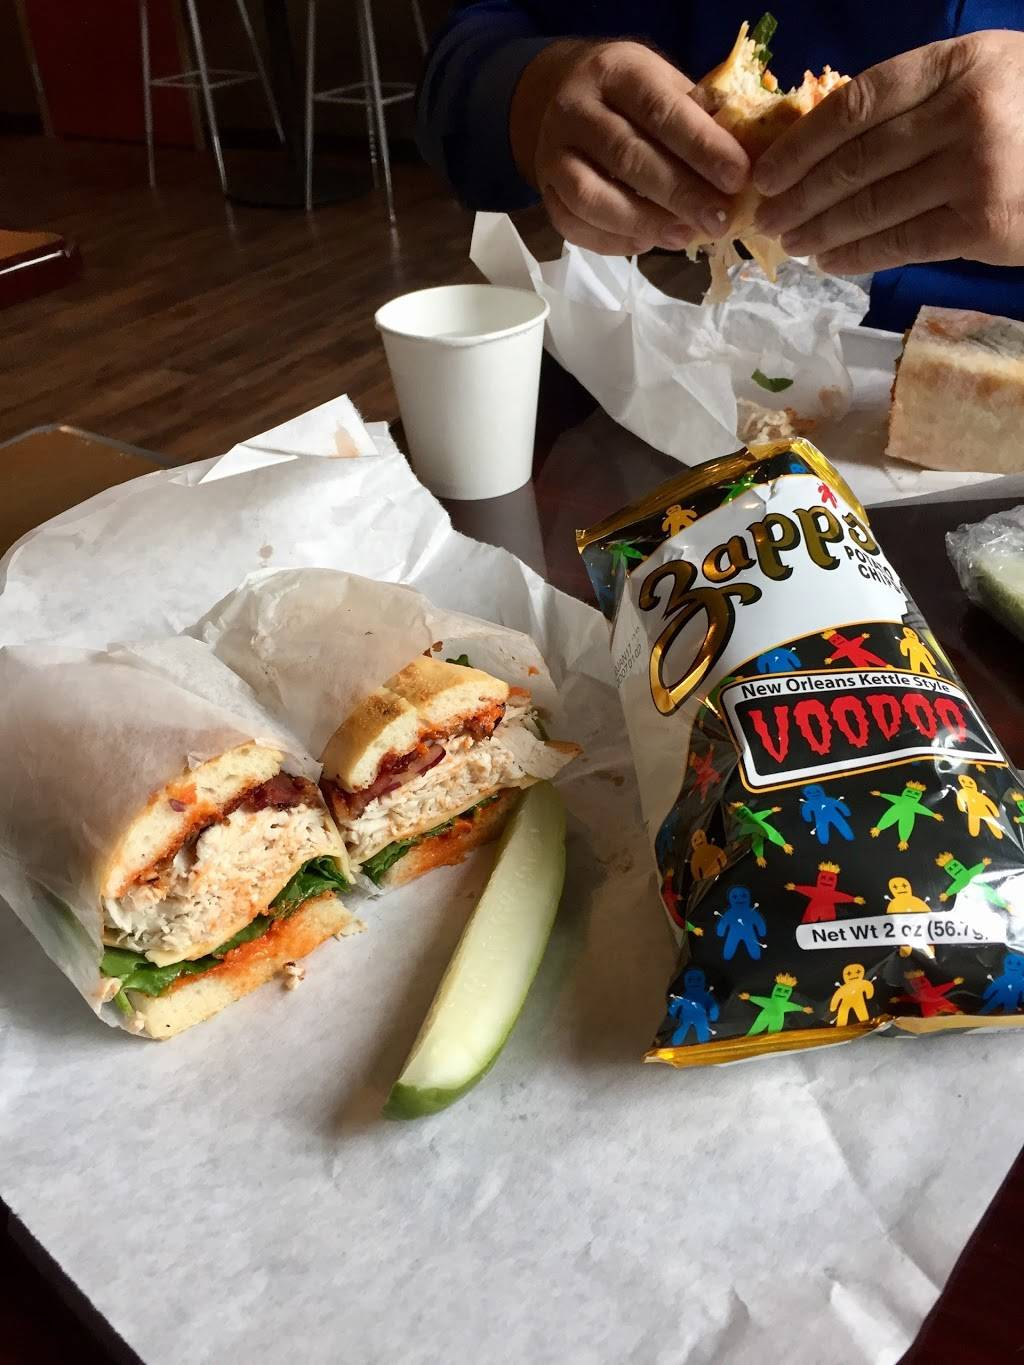 Herbn Twine Sand Co | restaurant | 4309 Lorain Ave, Cleveland, OH 44113, USA | 2164659600 OR +1 216-465-9600